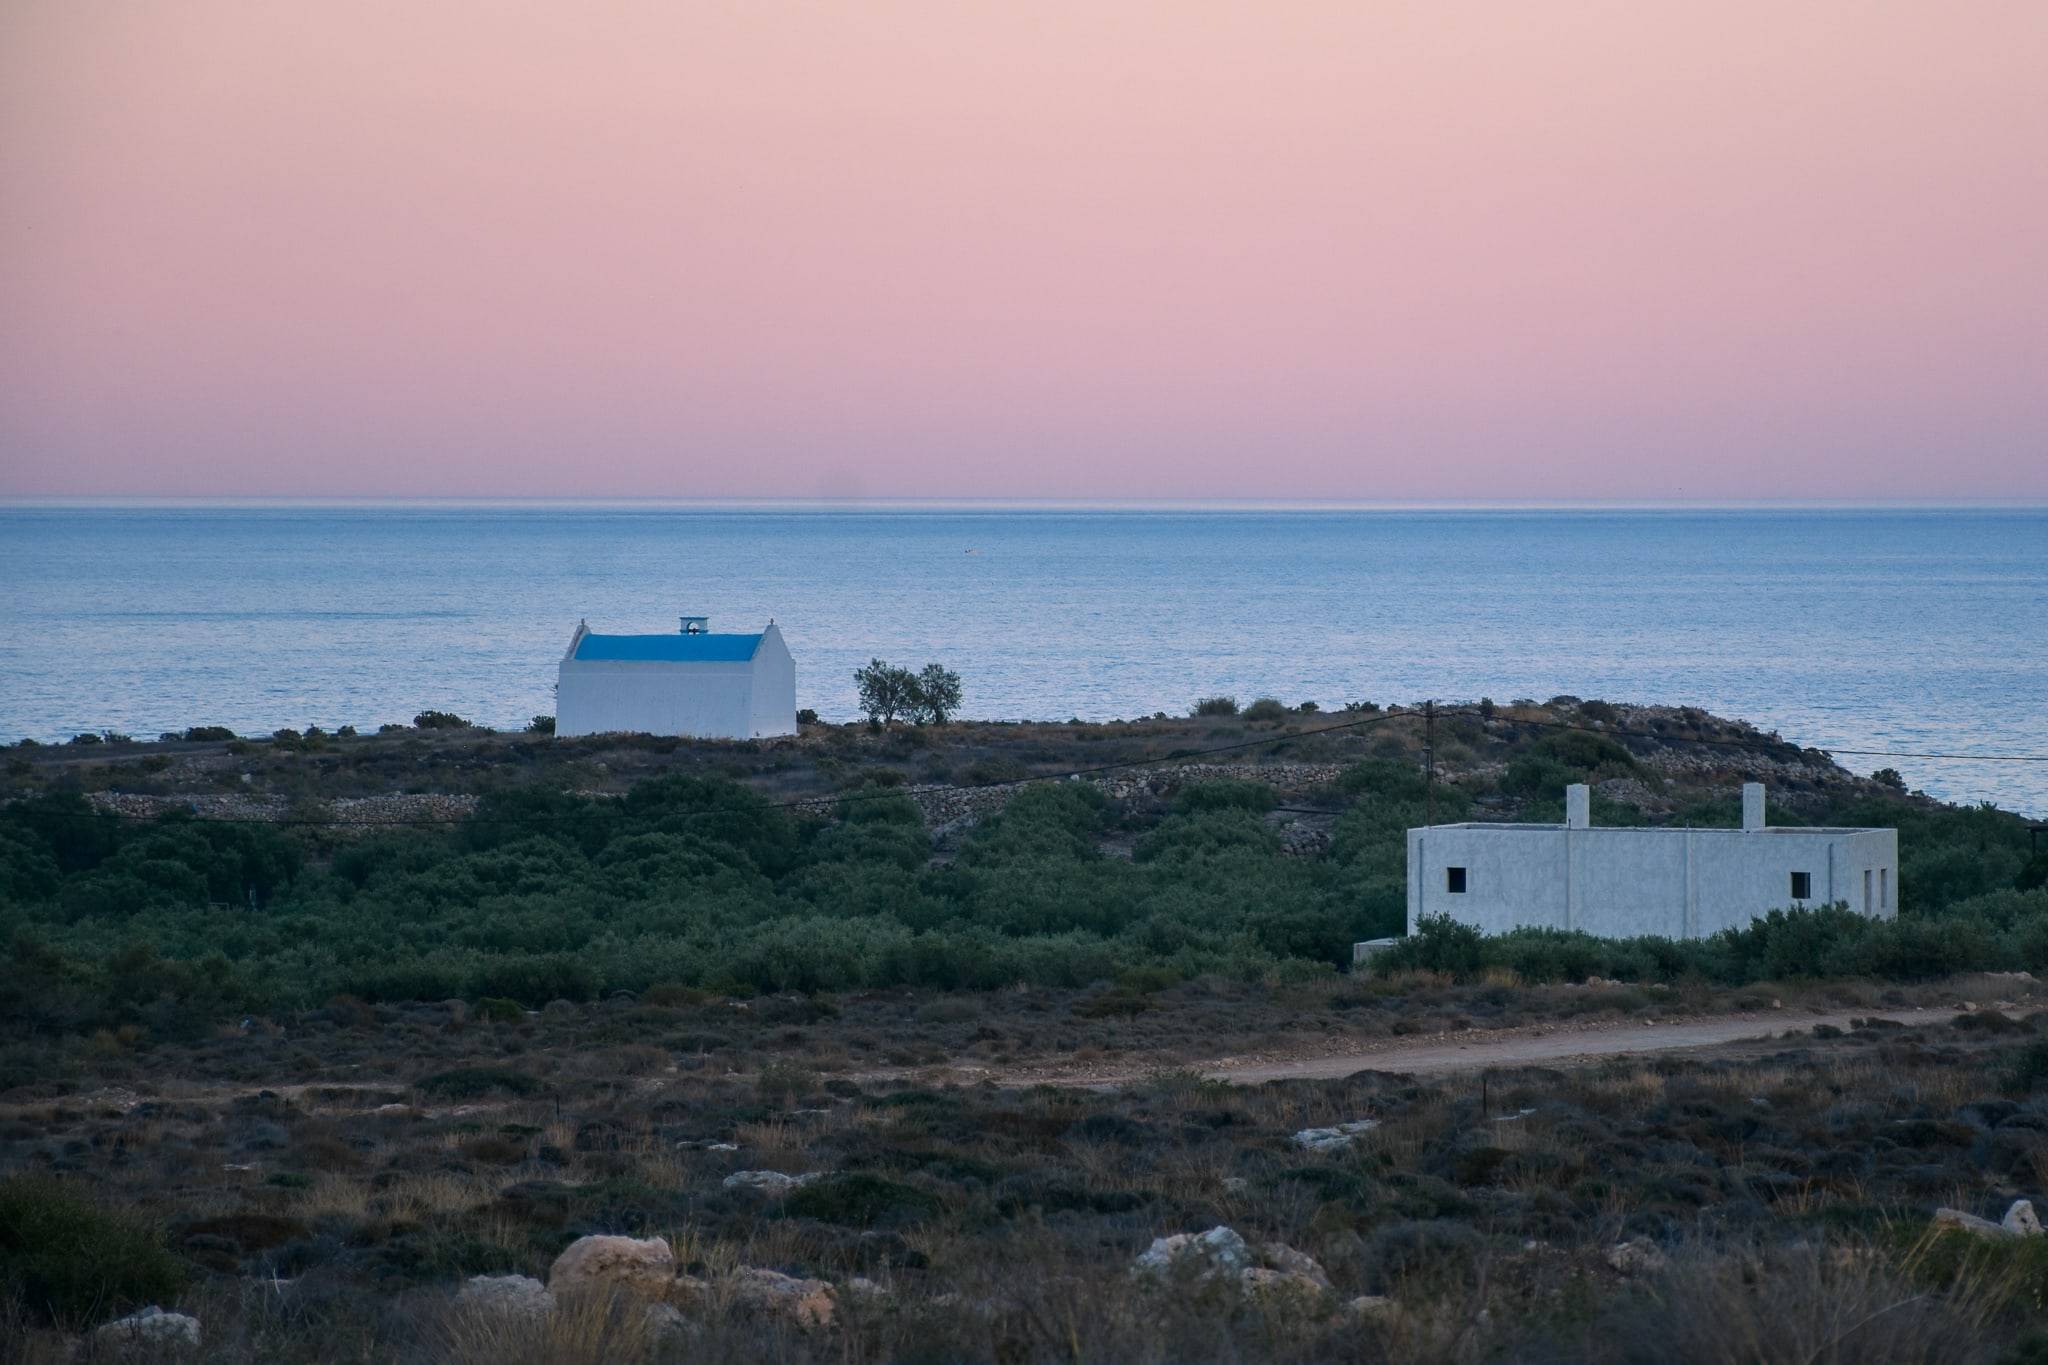 Sunset view from a plot in Xerokampos, east Crete. Sky in the background has a bit of violet color, sea is calm and blue and on the landscape horizon there is a small church of Saint Antonios. It has a white walls and a typical greek blue roof, which makes a perfect contrast with the sea.